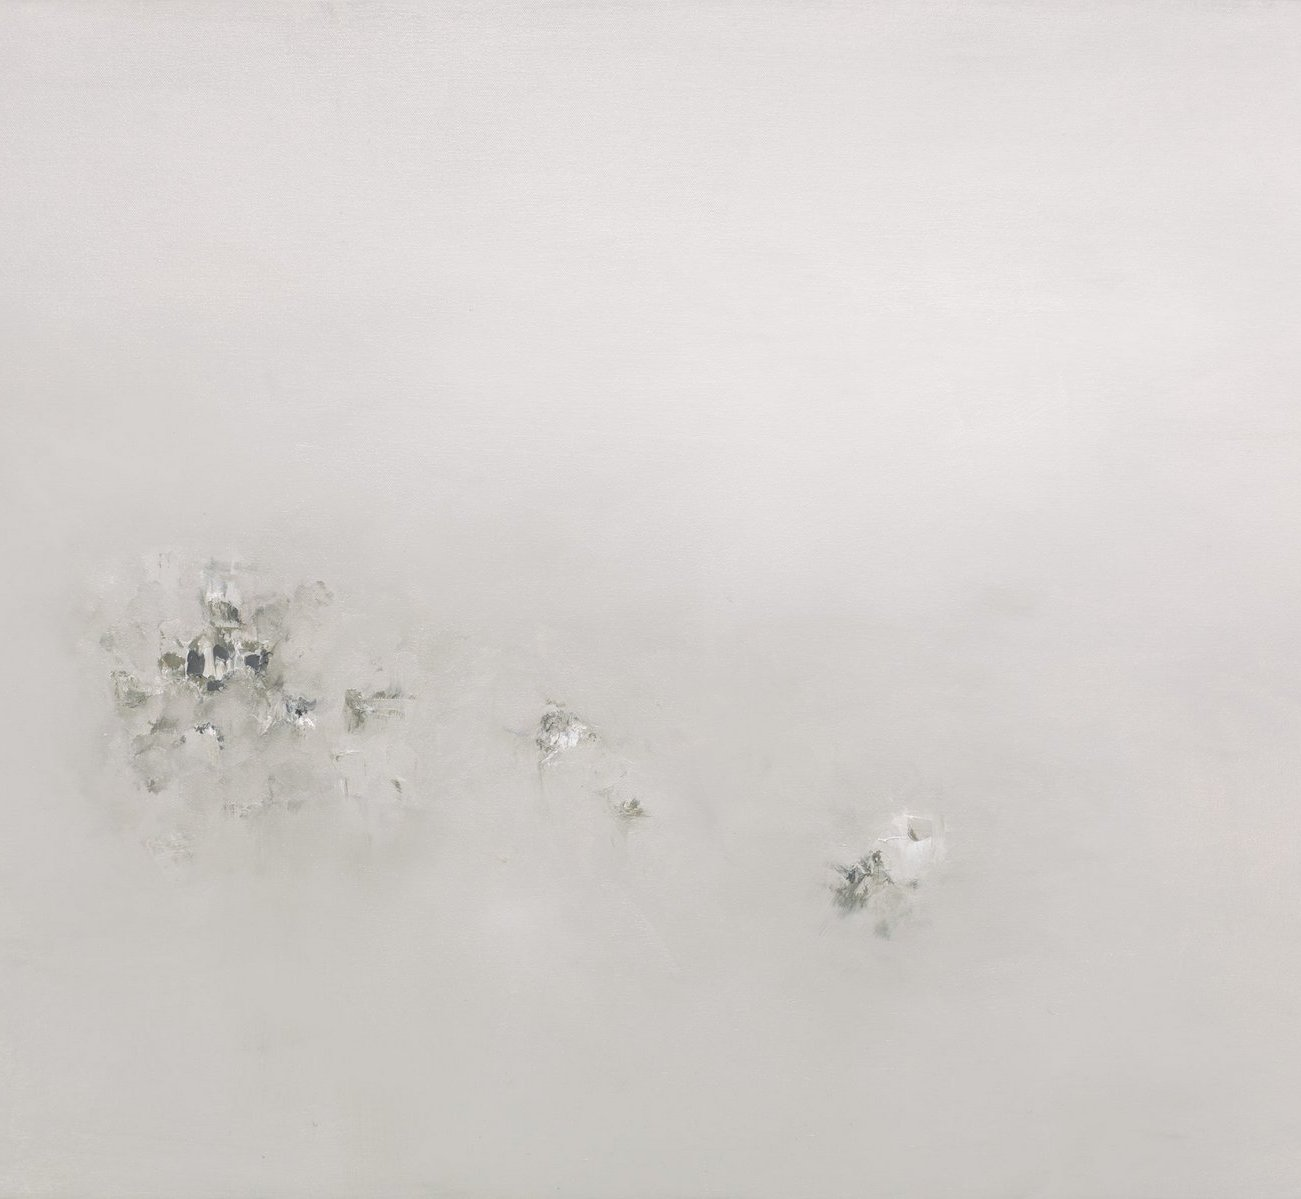 Danielle Voight Suchness, 2014 [DV.16] Oil on Canvas 30 x 40 in.